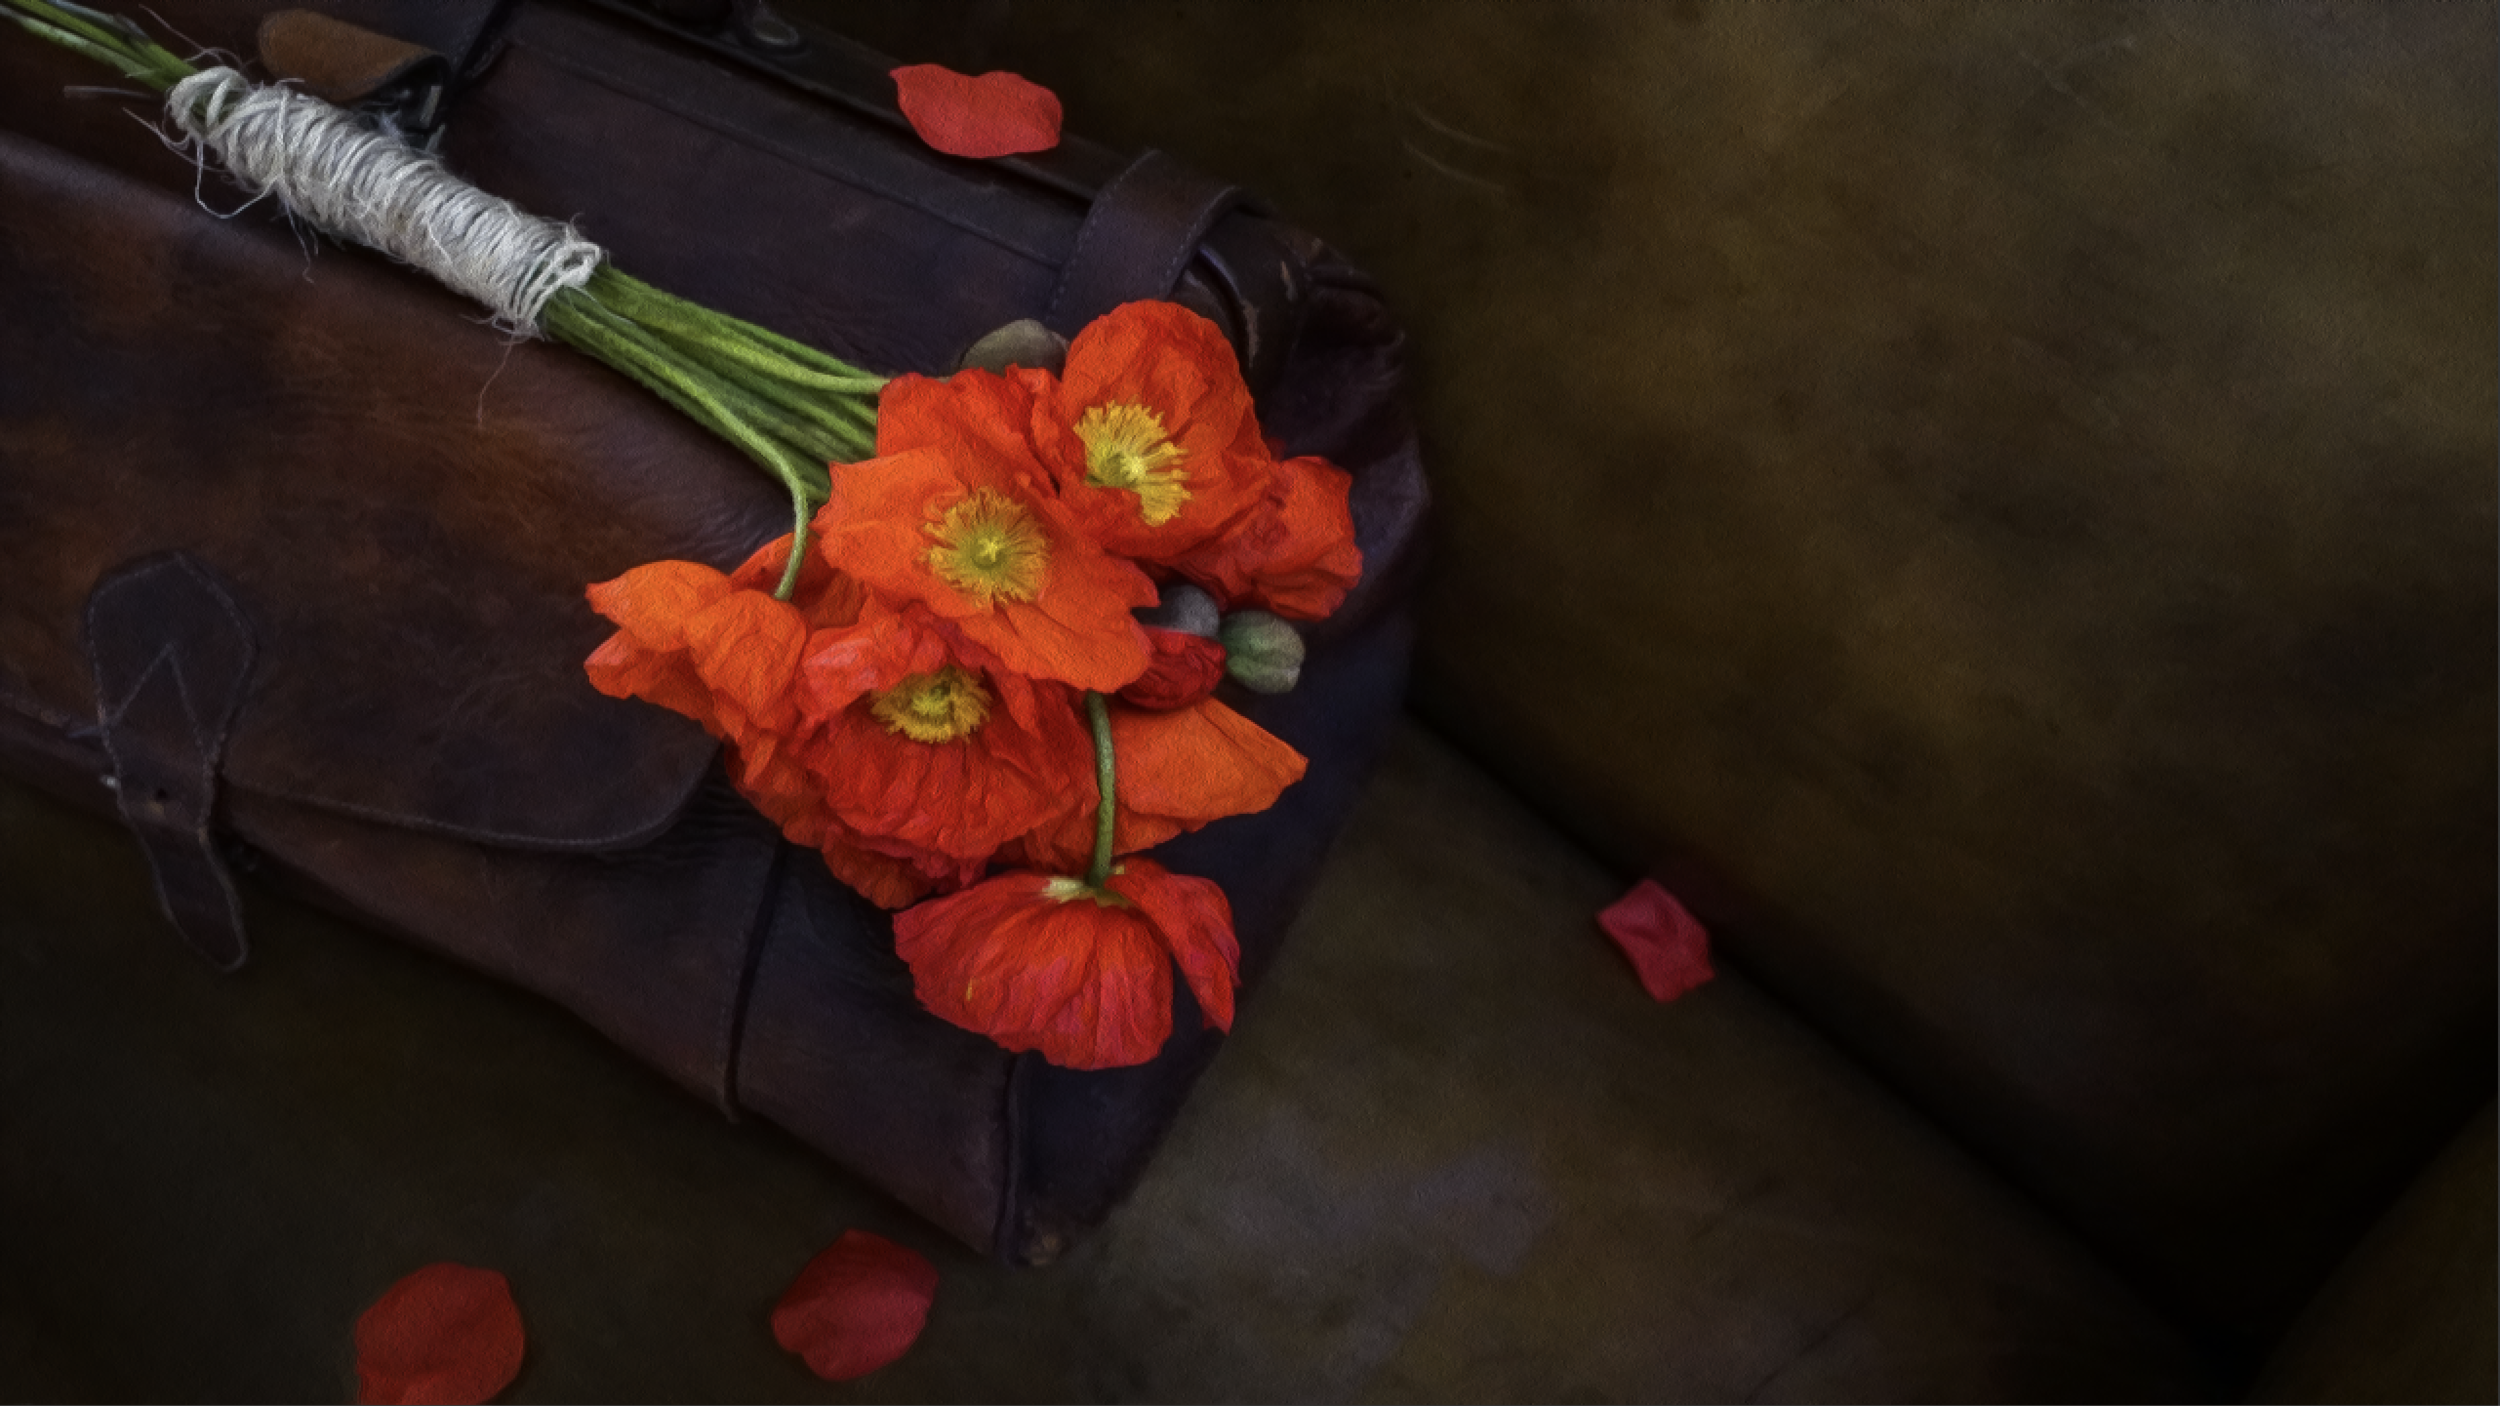 POPPIES 罌粟花 - While on a long-haul flight from Shanghai to New York, a despondent, American lawyer becomes seduced by the enchanting stories of a wise, Chinese woman seated beside him; unleashing feelings he had tried to bury deep inside.